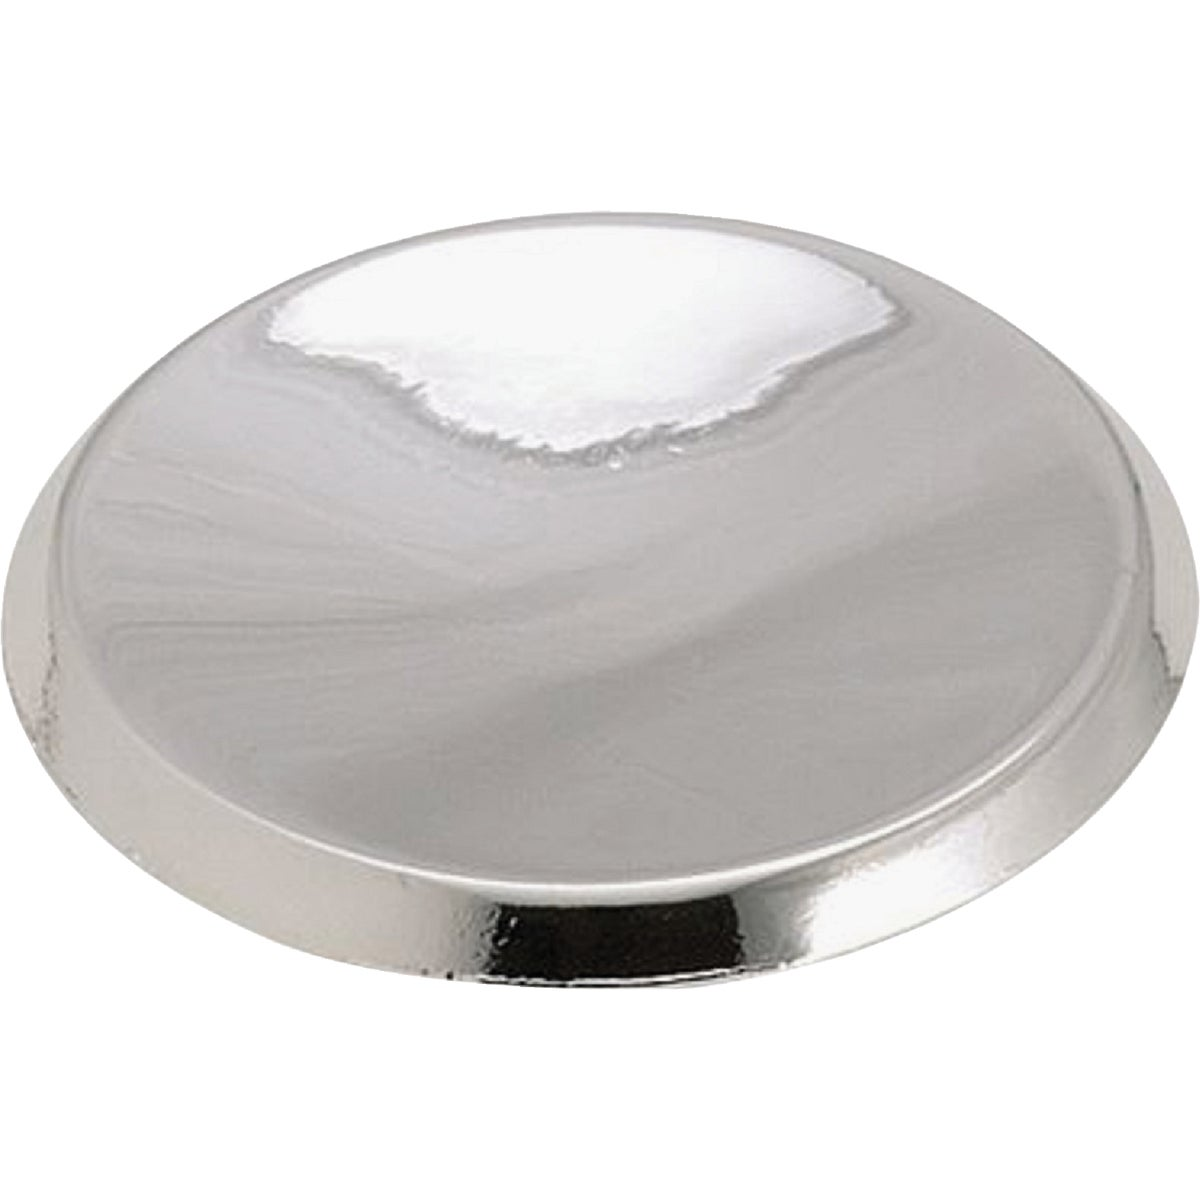 "1-1/2"" CHR MODERN KNOB - BP3413-26 by Amerock Corporation"